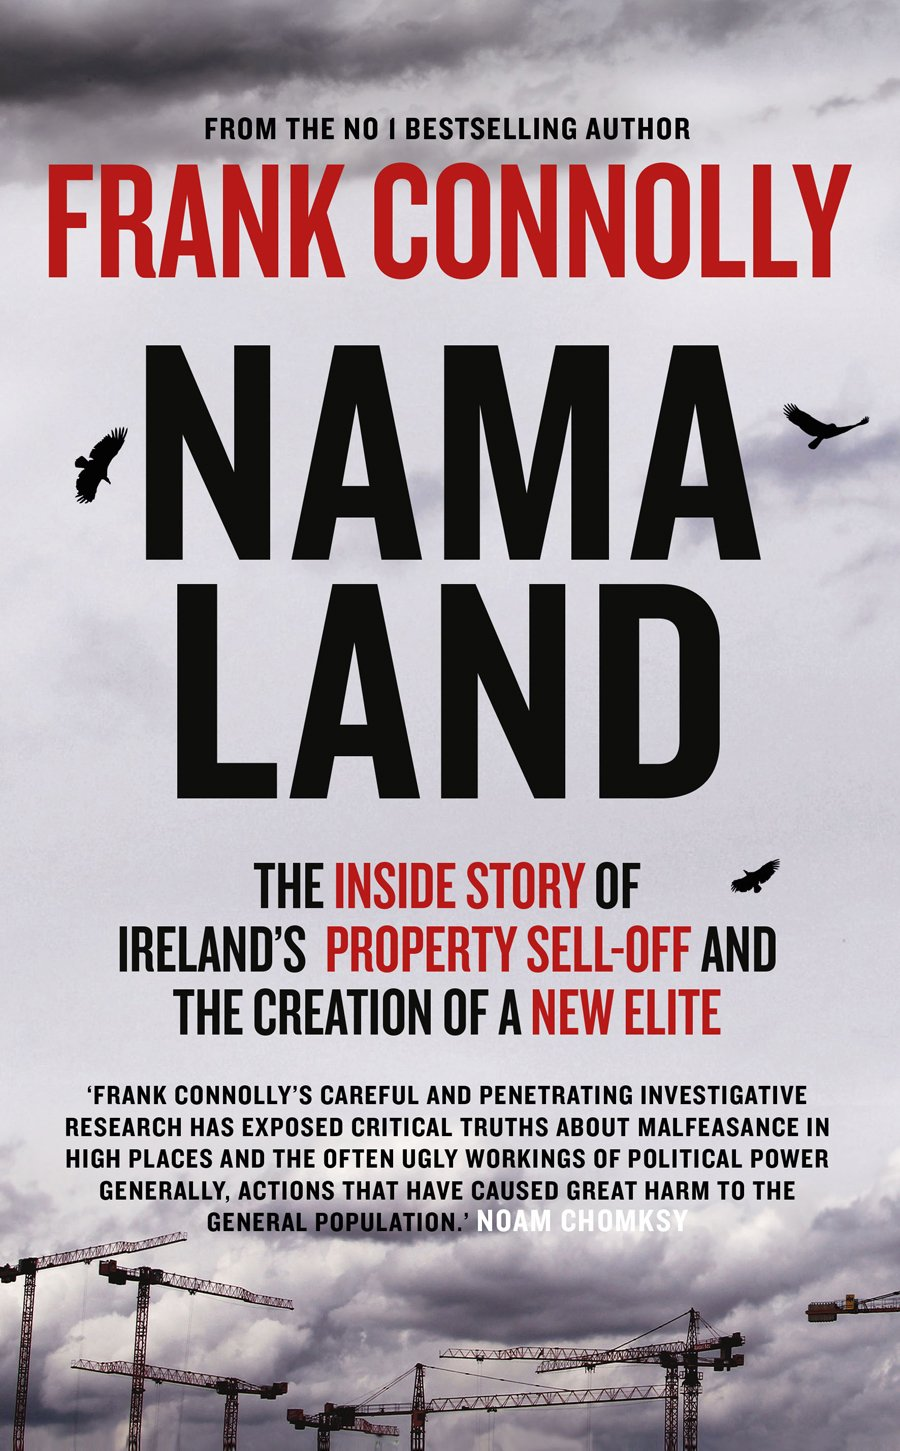 NAMA-LAND: The Inside Story of Ireland's Property Sell-Off